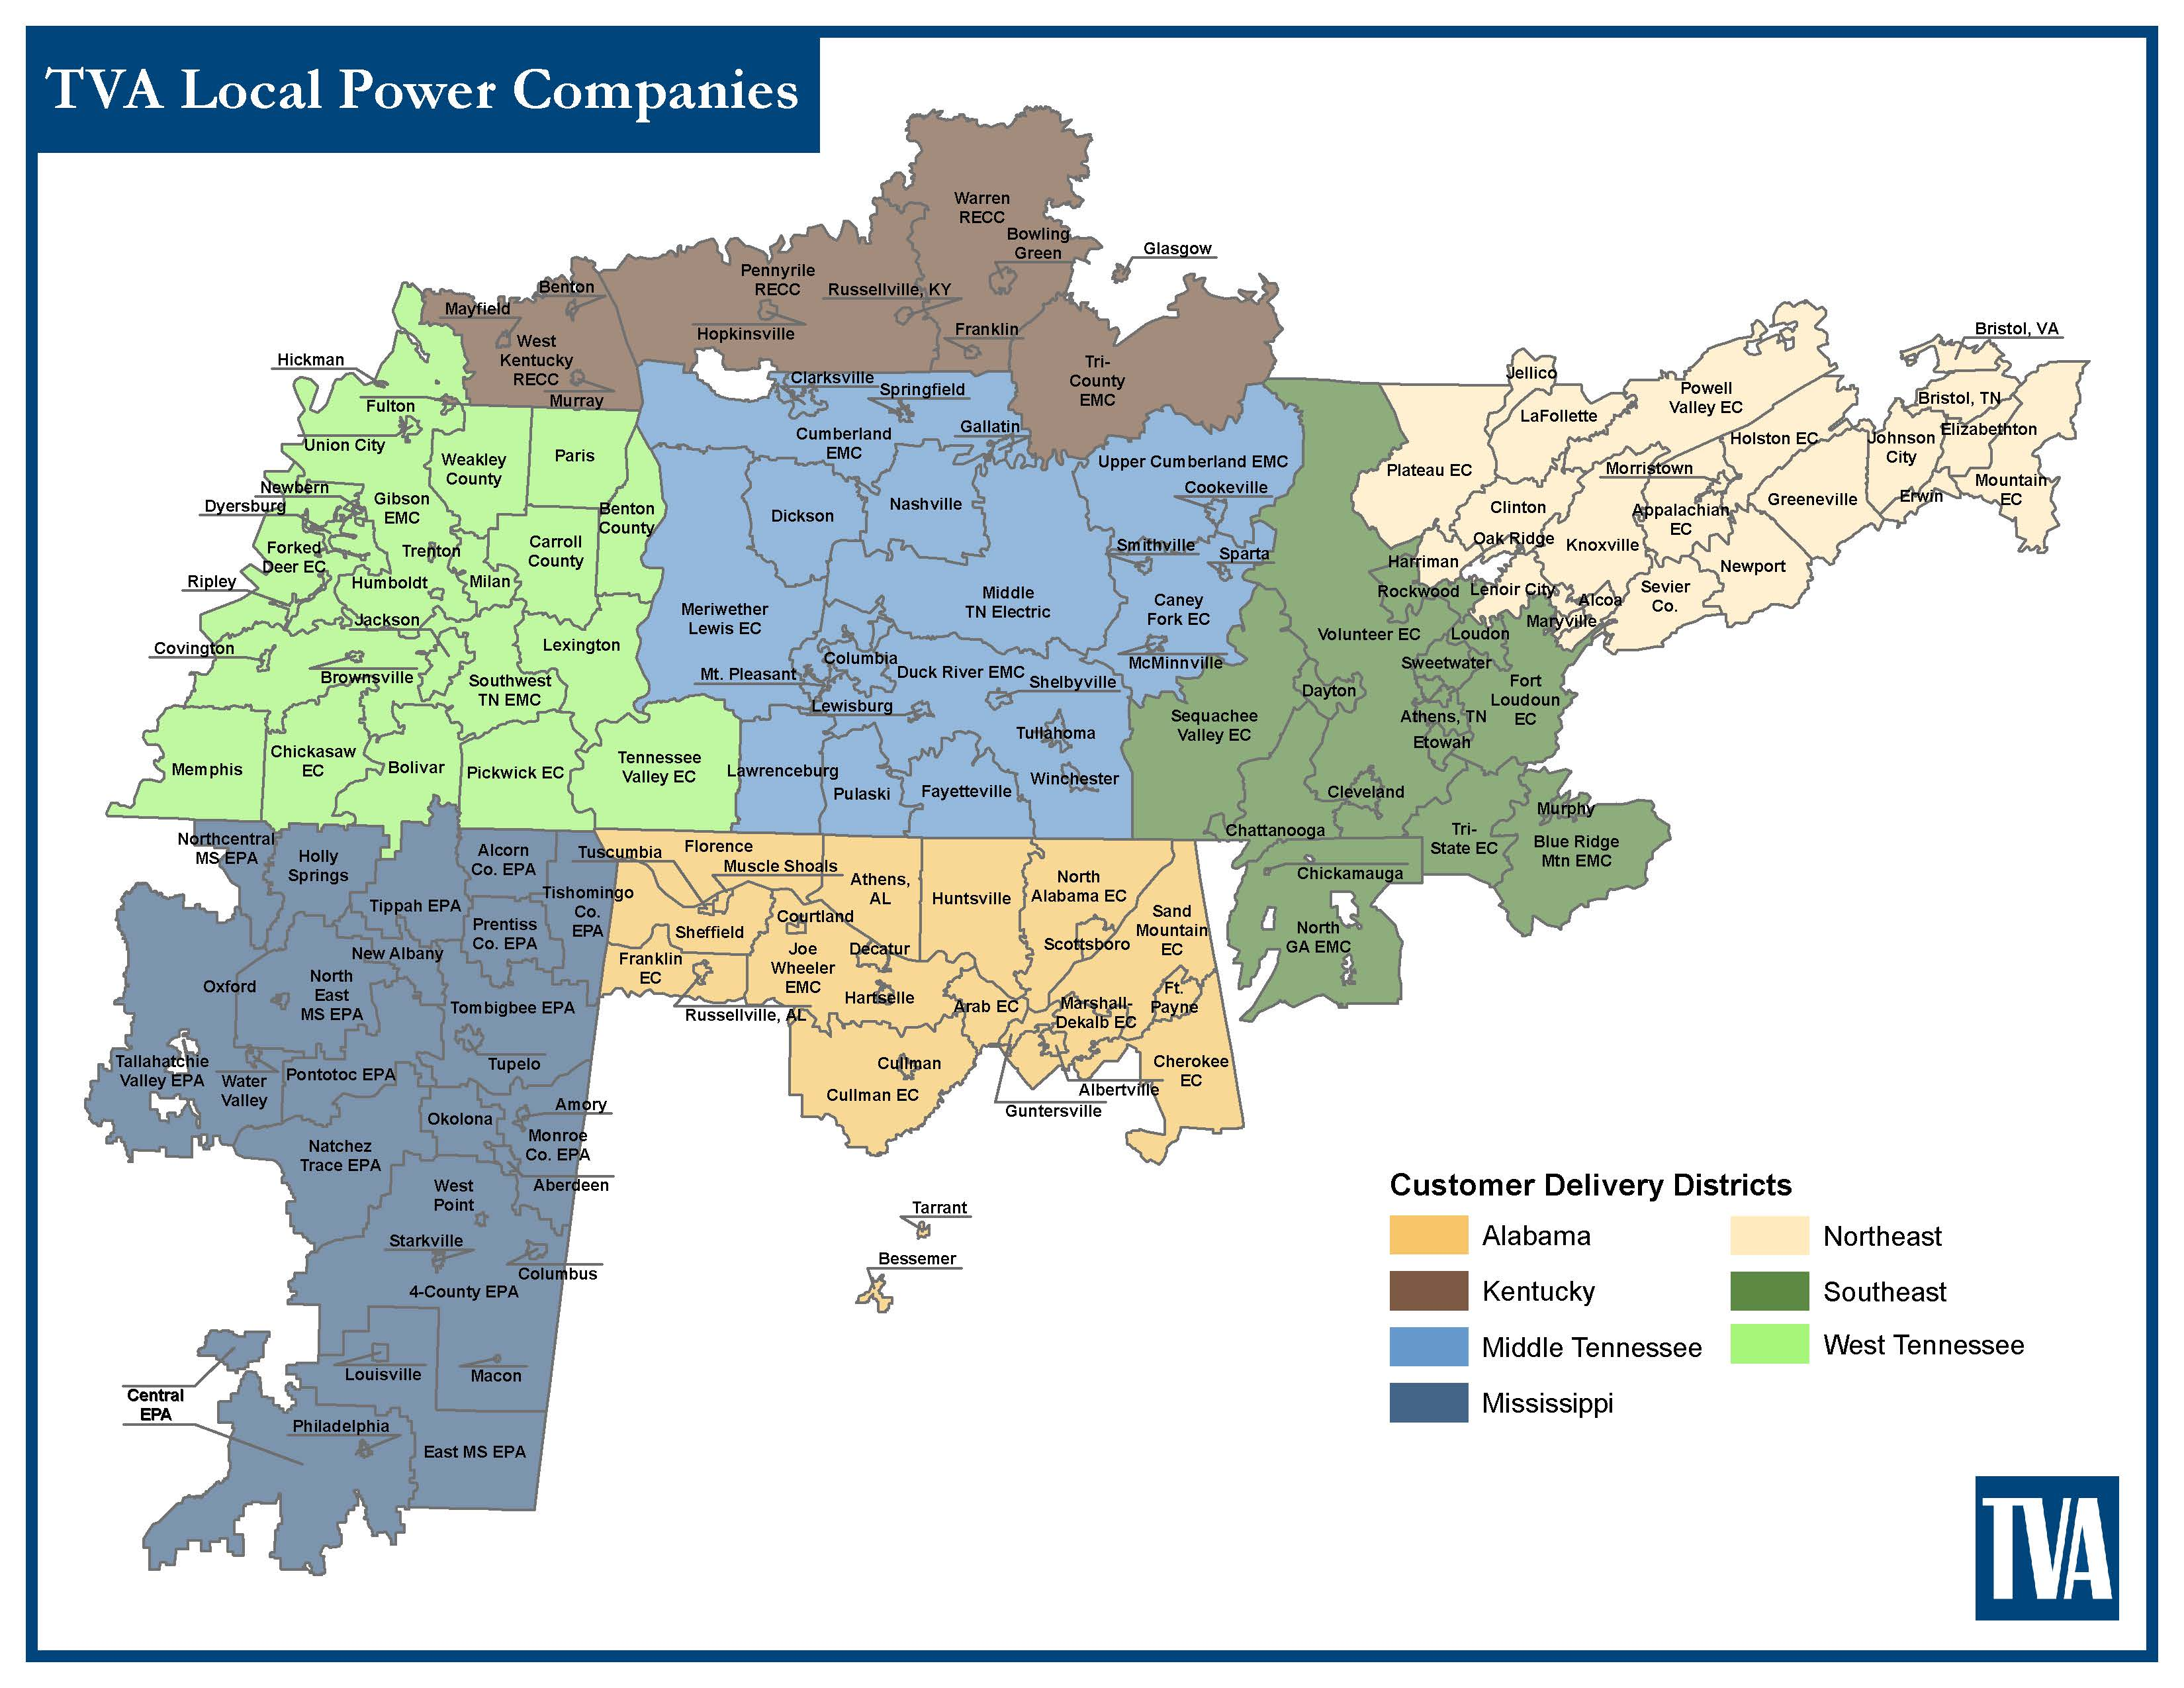 tva_customer_delivery_map_july2020